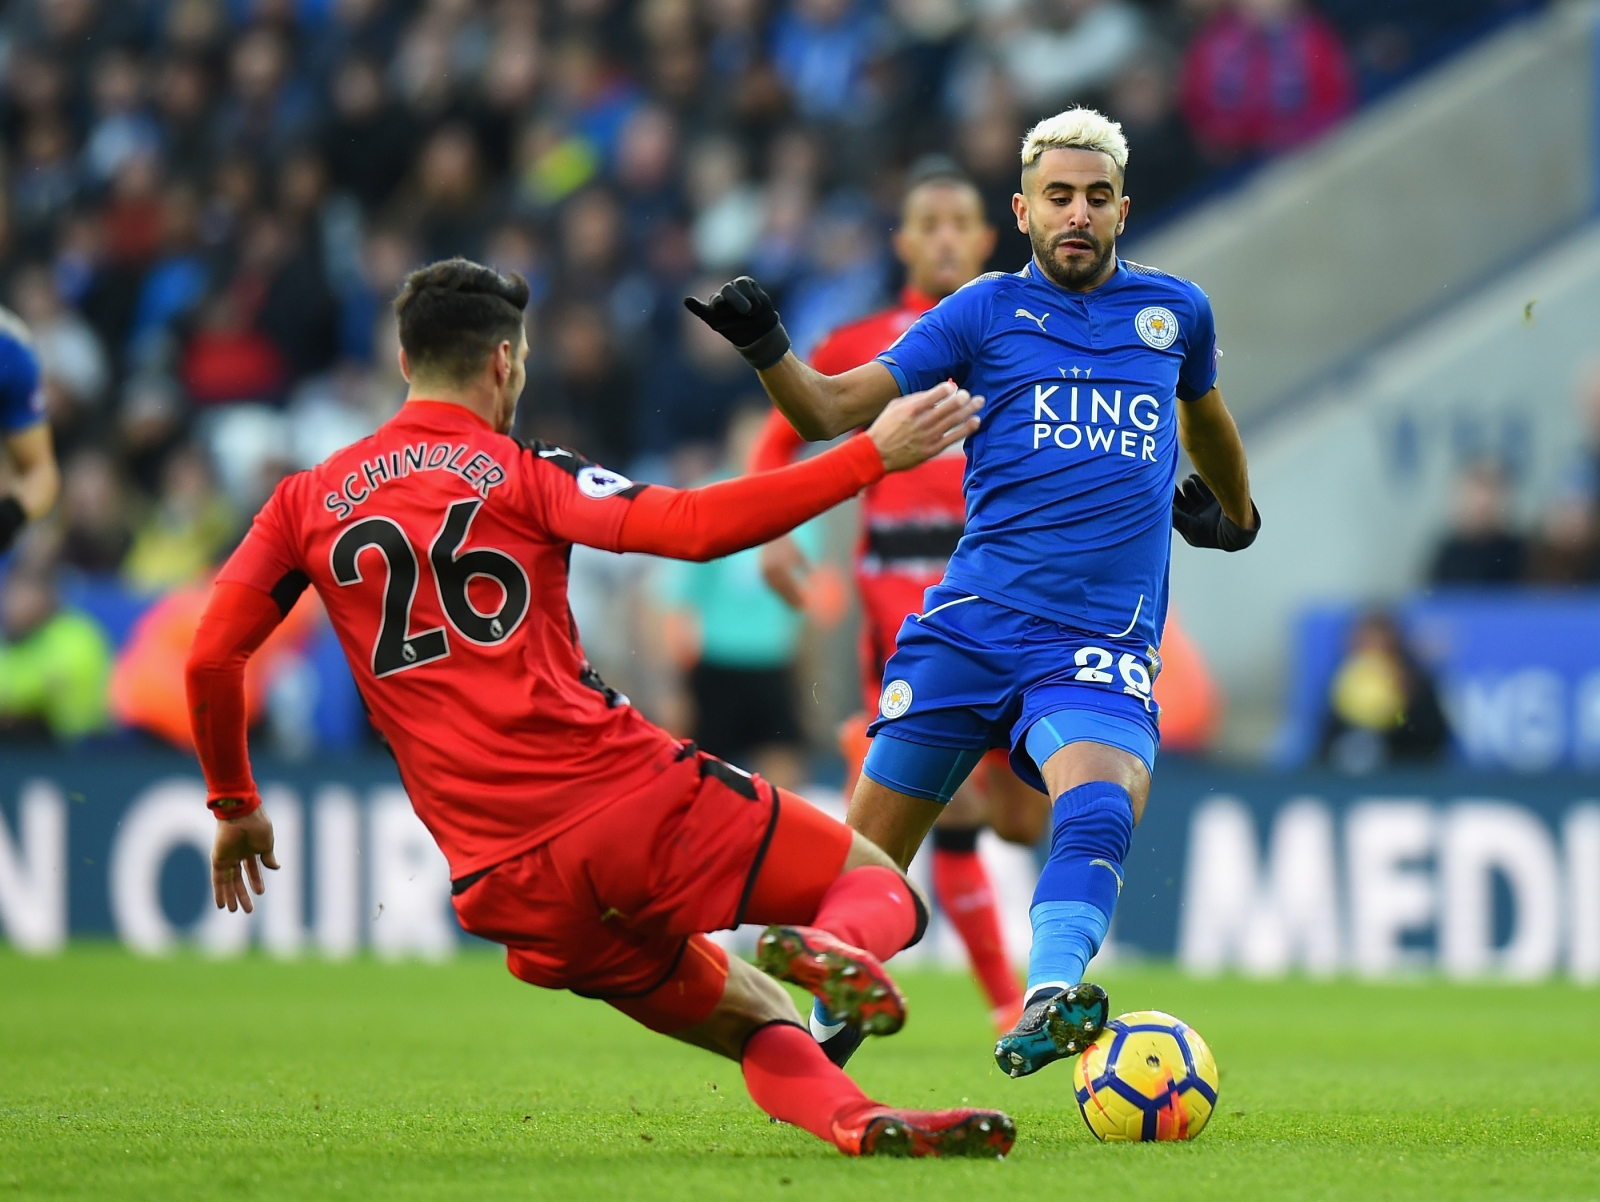 Mahrez prefers Arsenal move over Liverpool - report